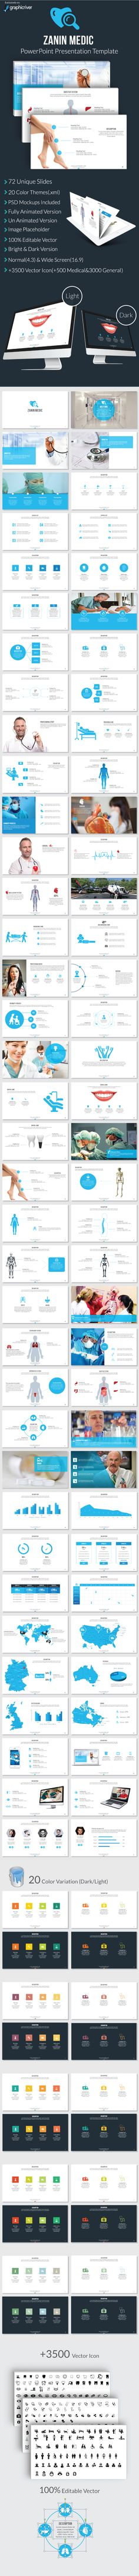 Zanin Medic PowerPoint Presentation Template. Download here: http://graphicriver.net/item/zanin-medic-powerpoint-presentation-template/15298950?ref=ksioks